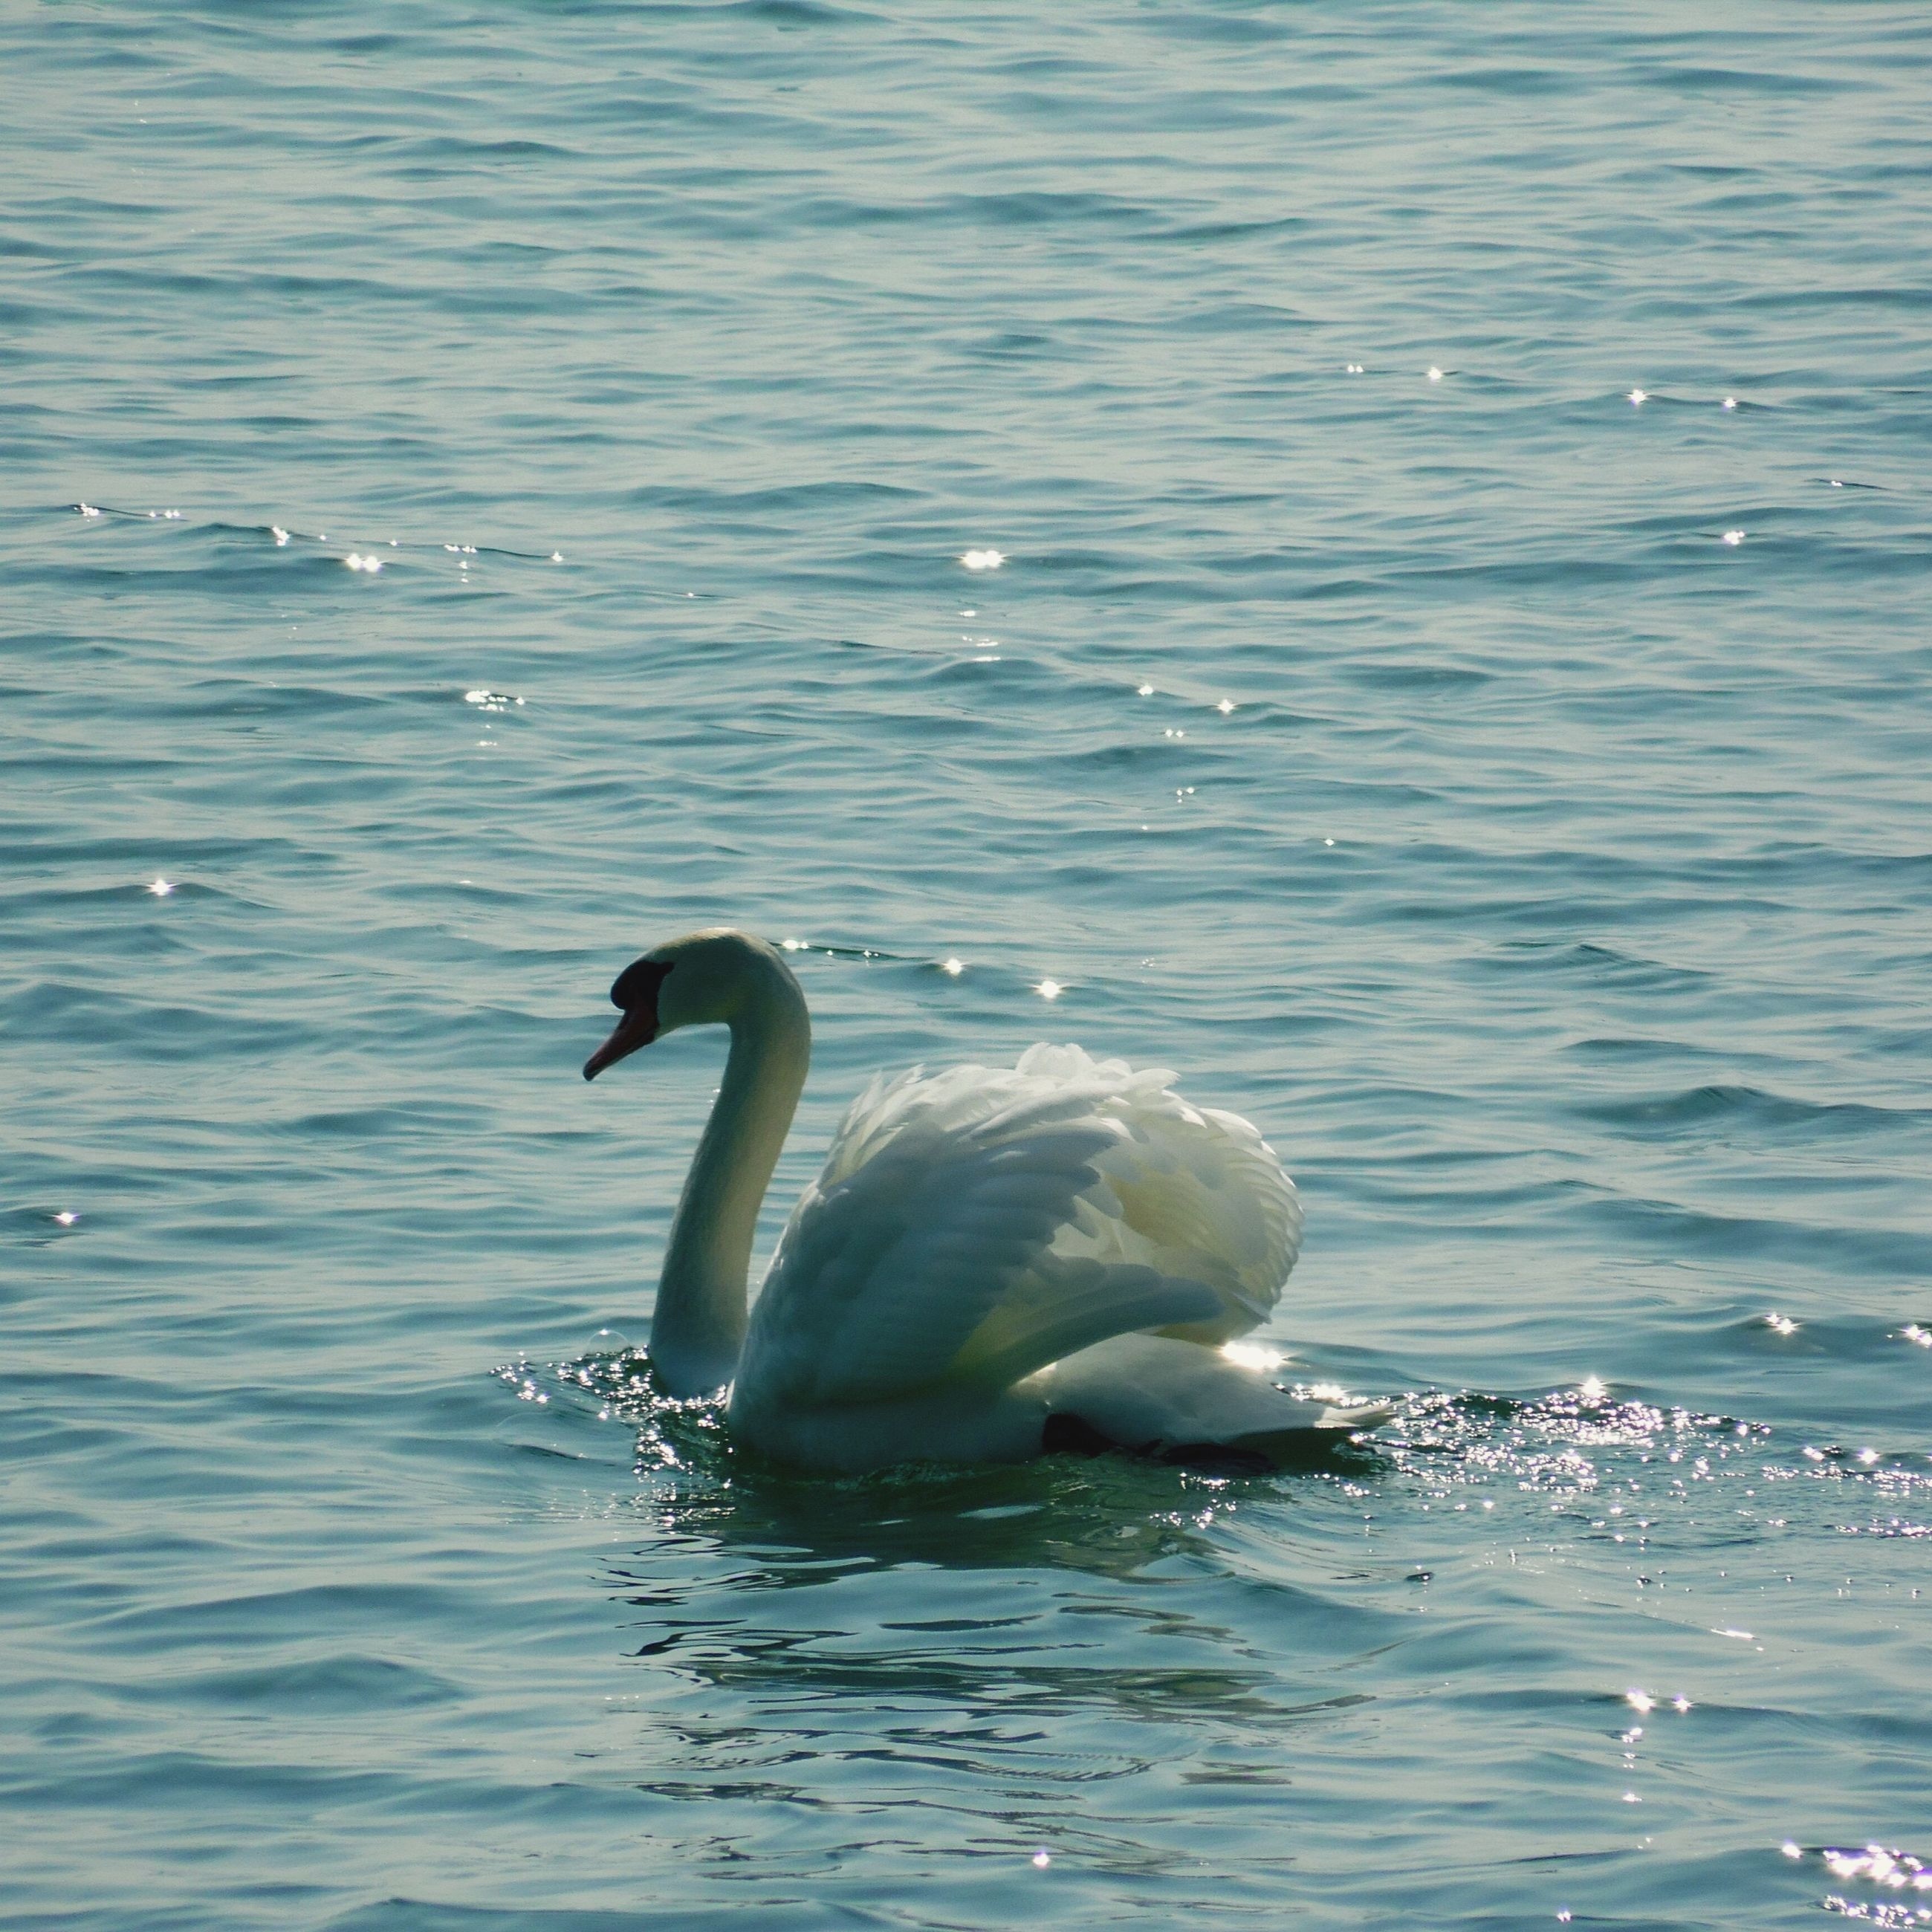 animal themes, water, bird, animals in the wild, wildlife, swimming, waterfront, rippled, sea, lake, nature, swan, seagull, beauty in nature, duck, two animals, one animal, water bird, outdoors, day